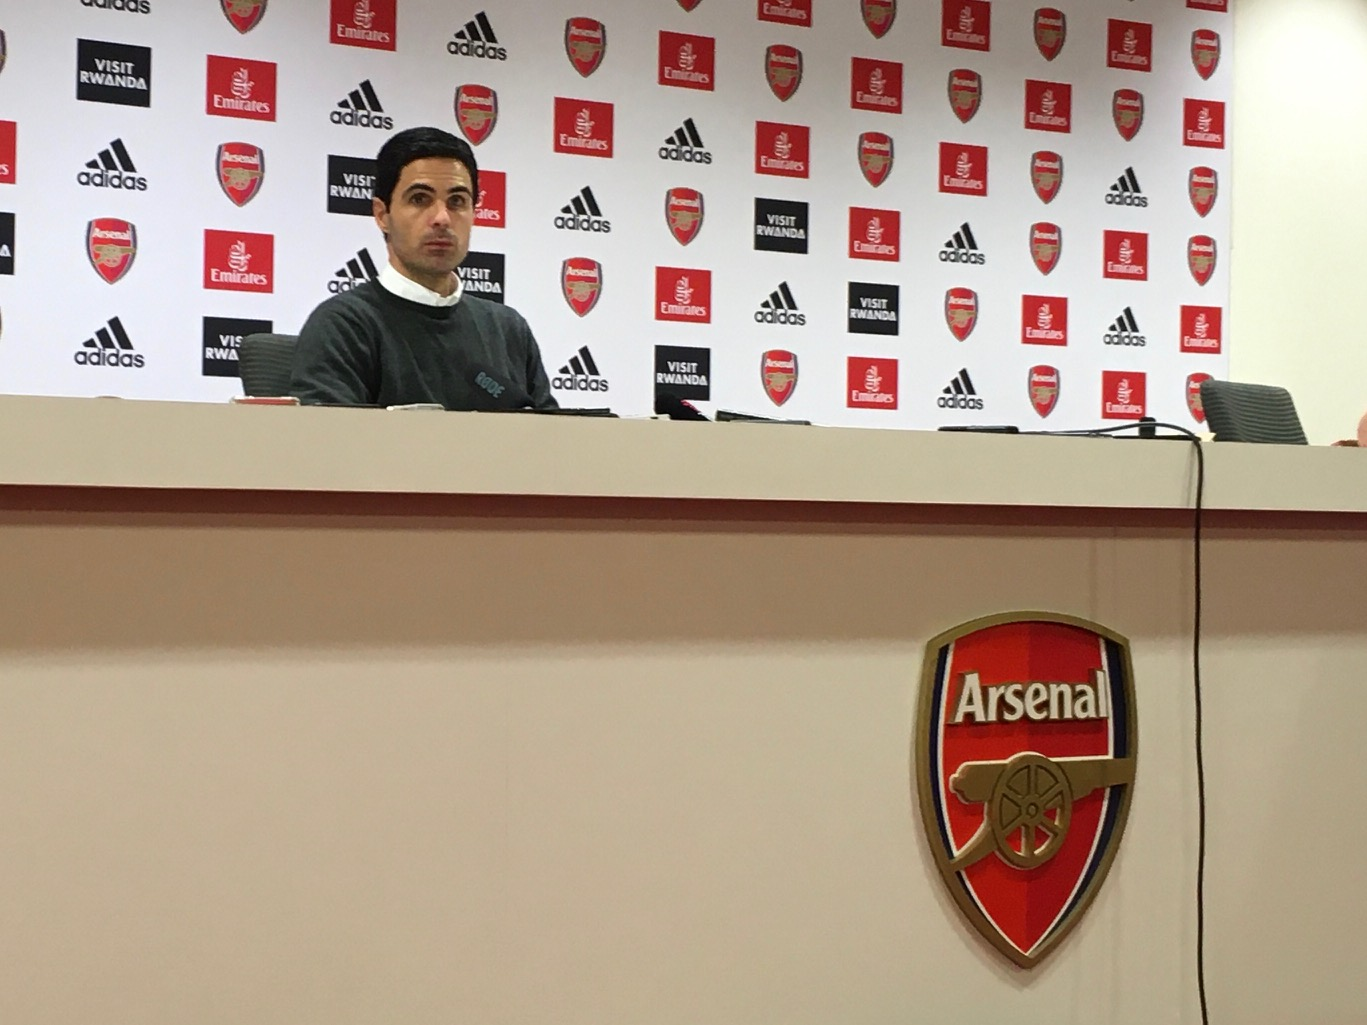 Mikel Arteta won his first match as Arsenal Head Coach with a 2-0 defeat of Manchester United. (Tusdiq Din)